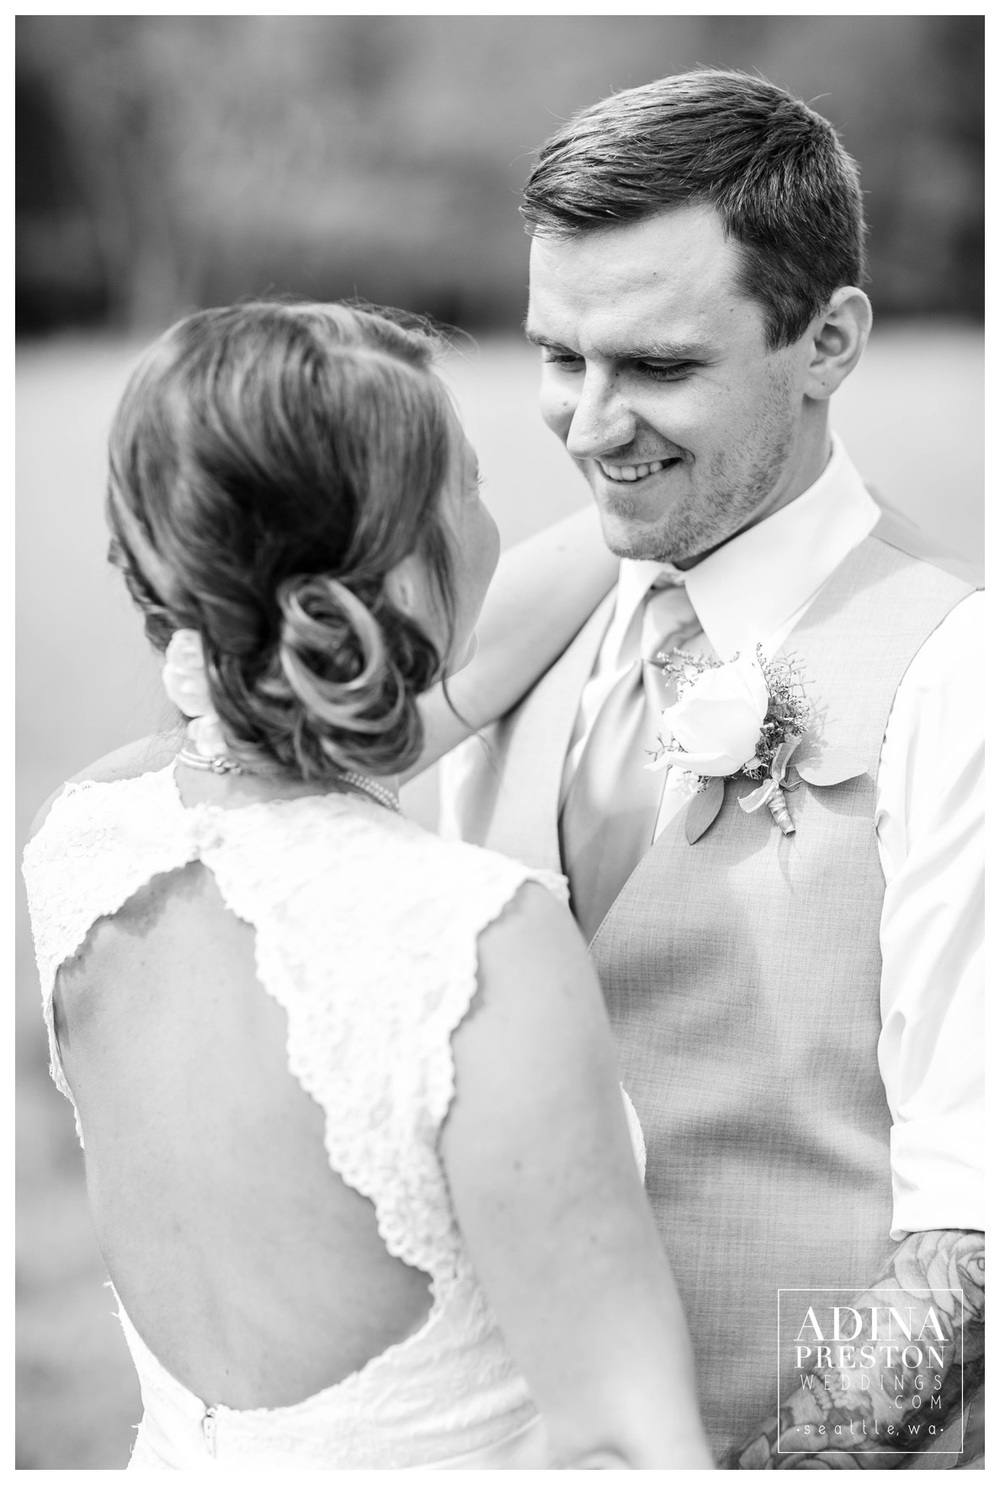 Teagan+Alex_Adina+Preston+Weddings_Seattle+Weddings_Seattle+Wedding+Photographer.jpg